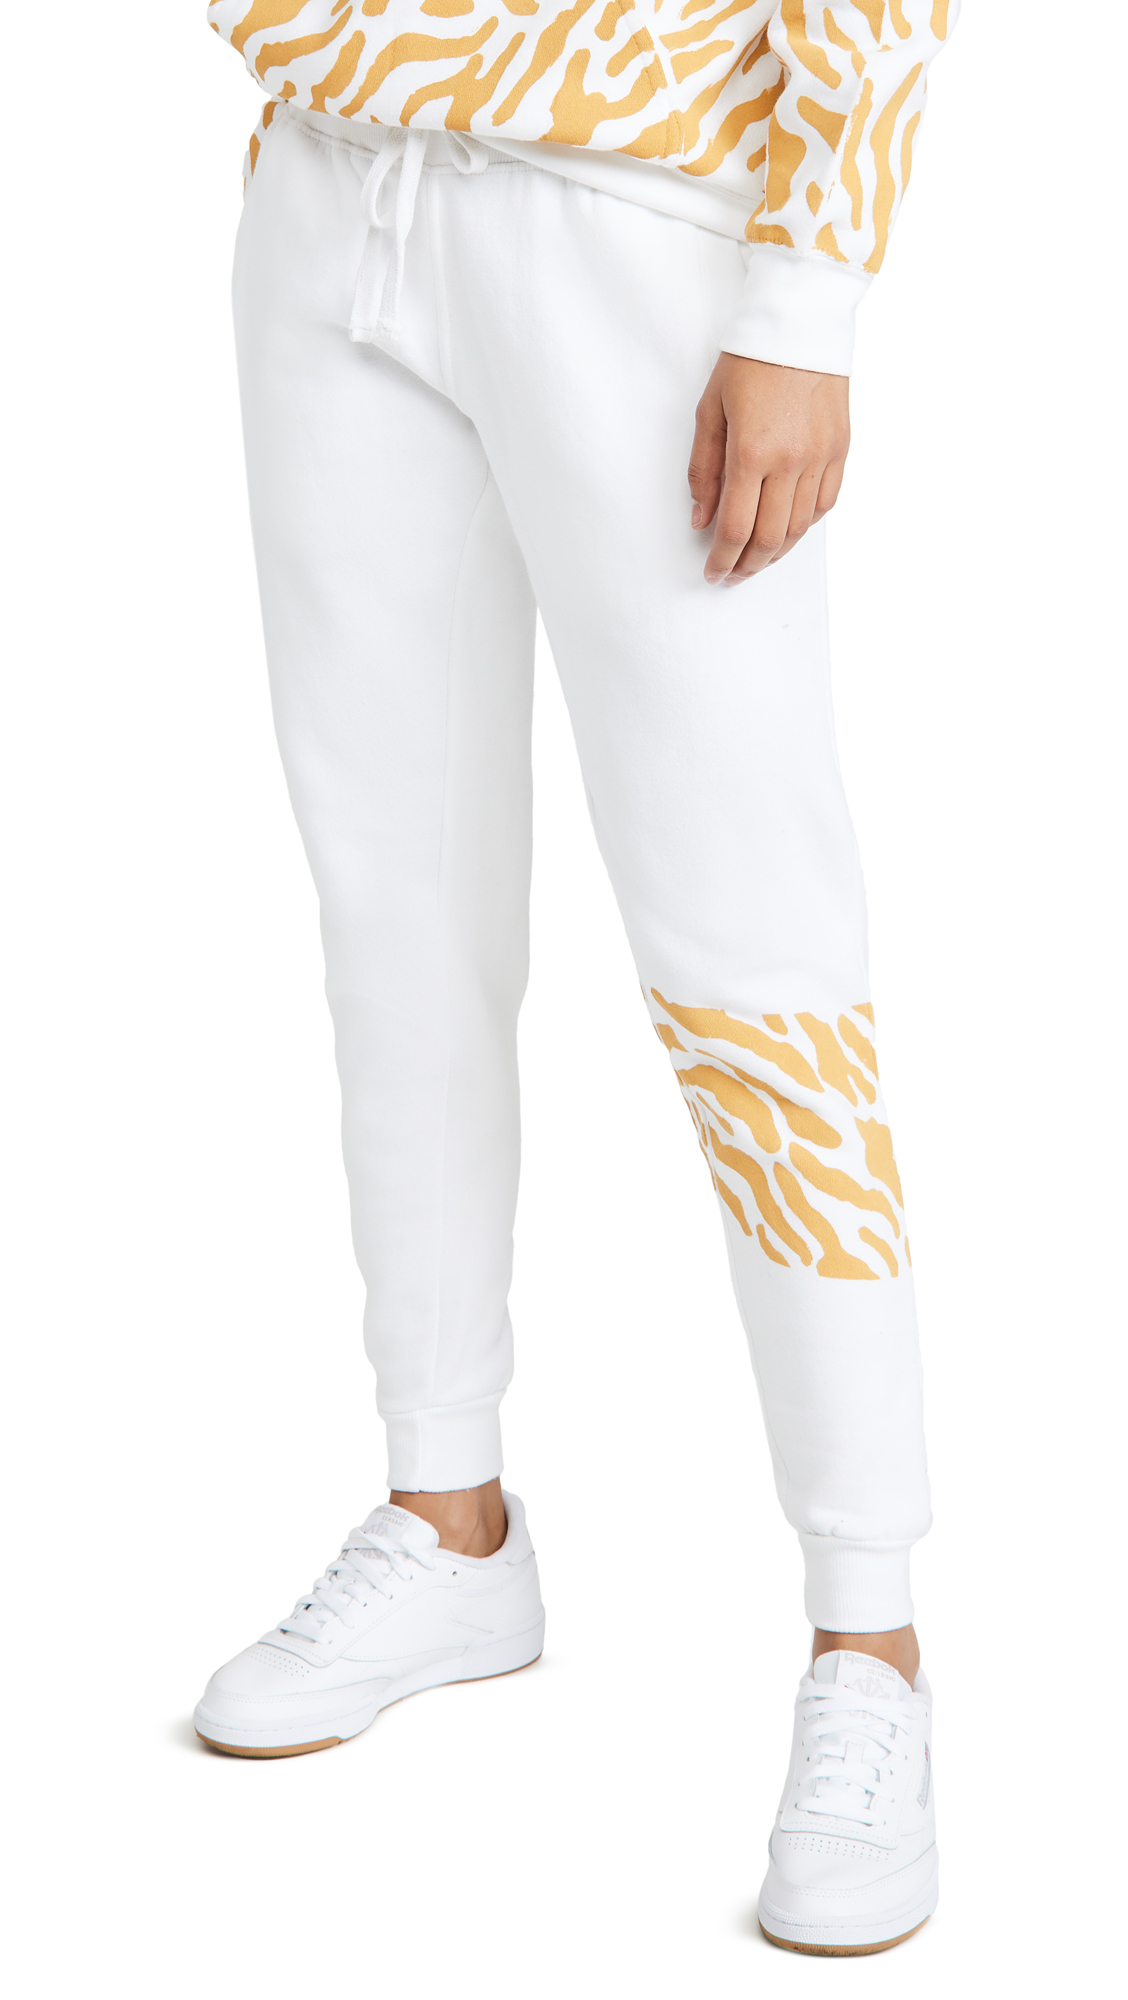 Worthy Threads Tiger Print Joggers